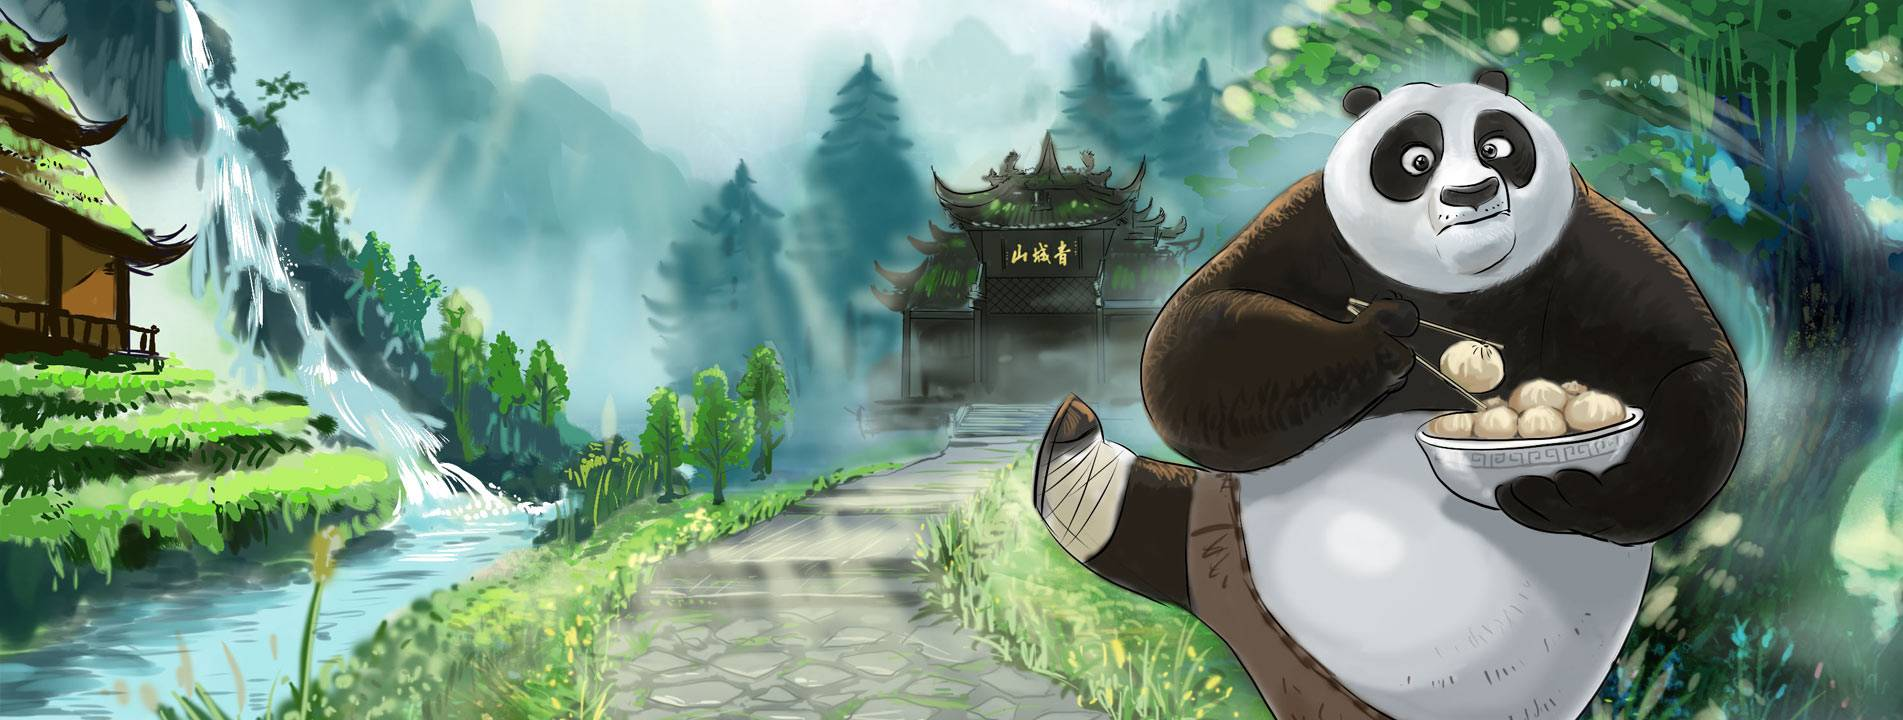 Welcome to Kungfu Panda's hometown